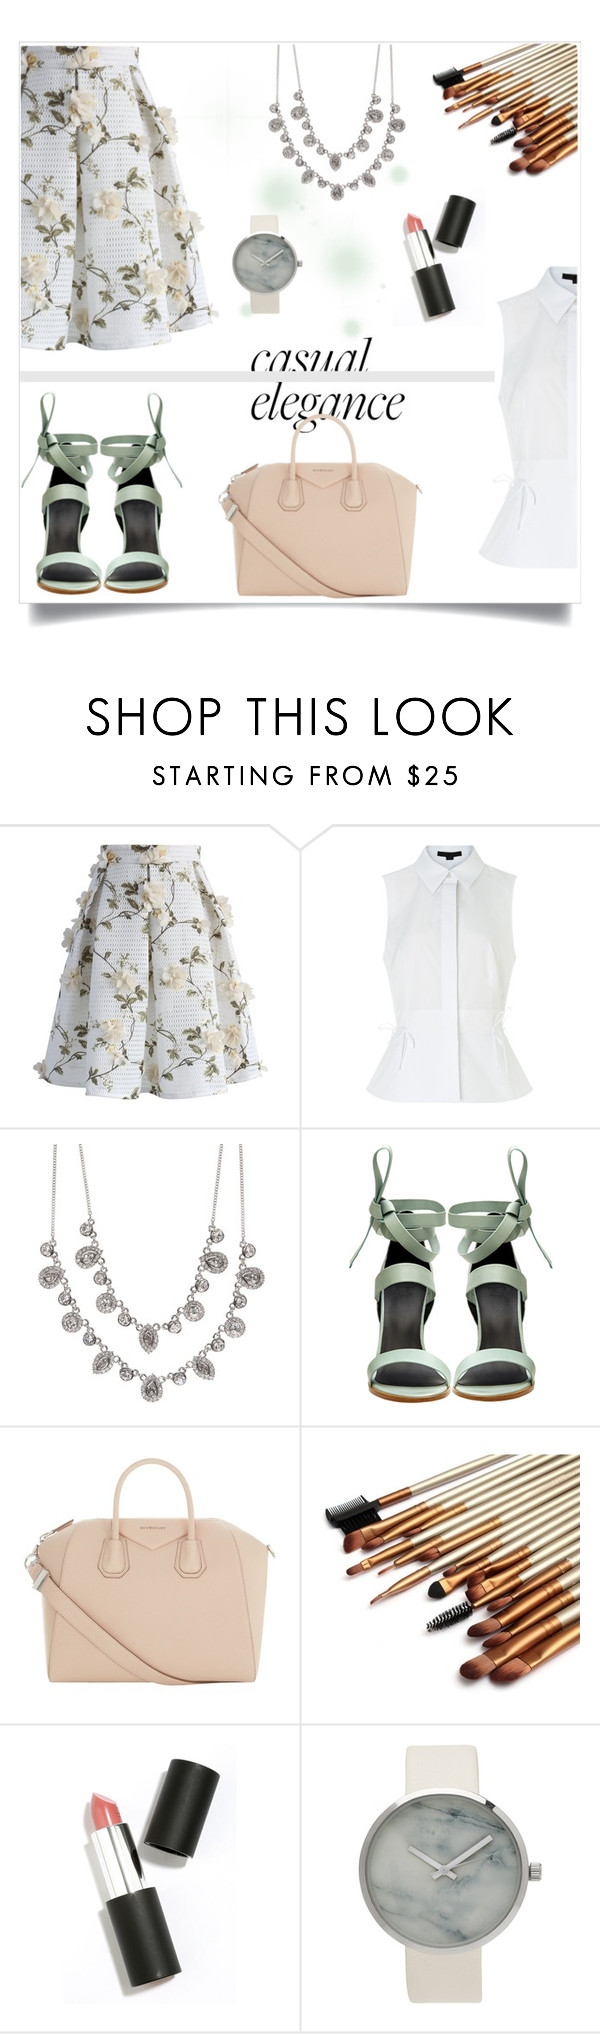 """""""MINT & FLORAL"""" by letiletz on Polyvore featuring moda, Chicwish, Alexander Wang, Givenchy, TIBI, Sigma Beauty e Flowers"""